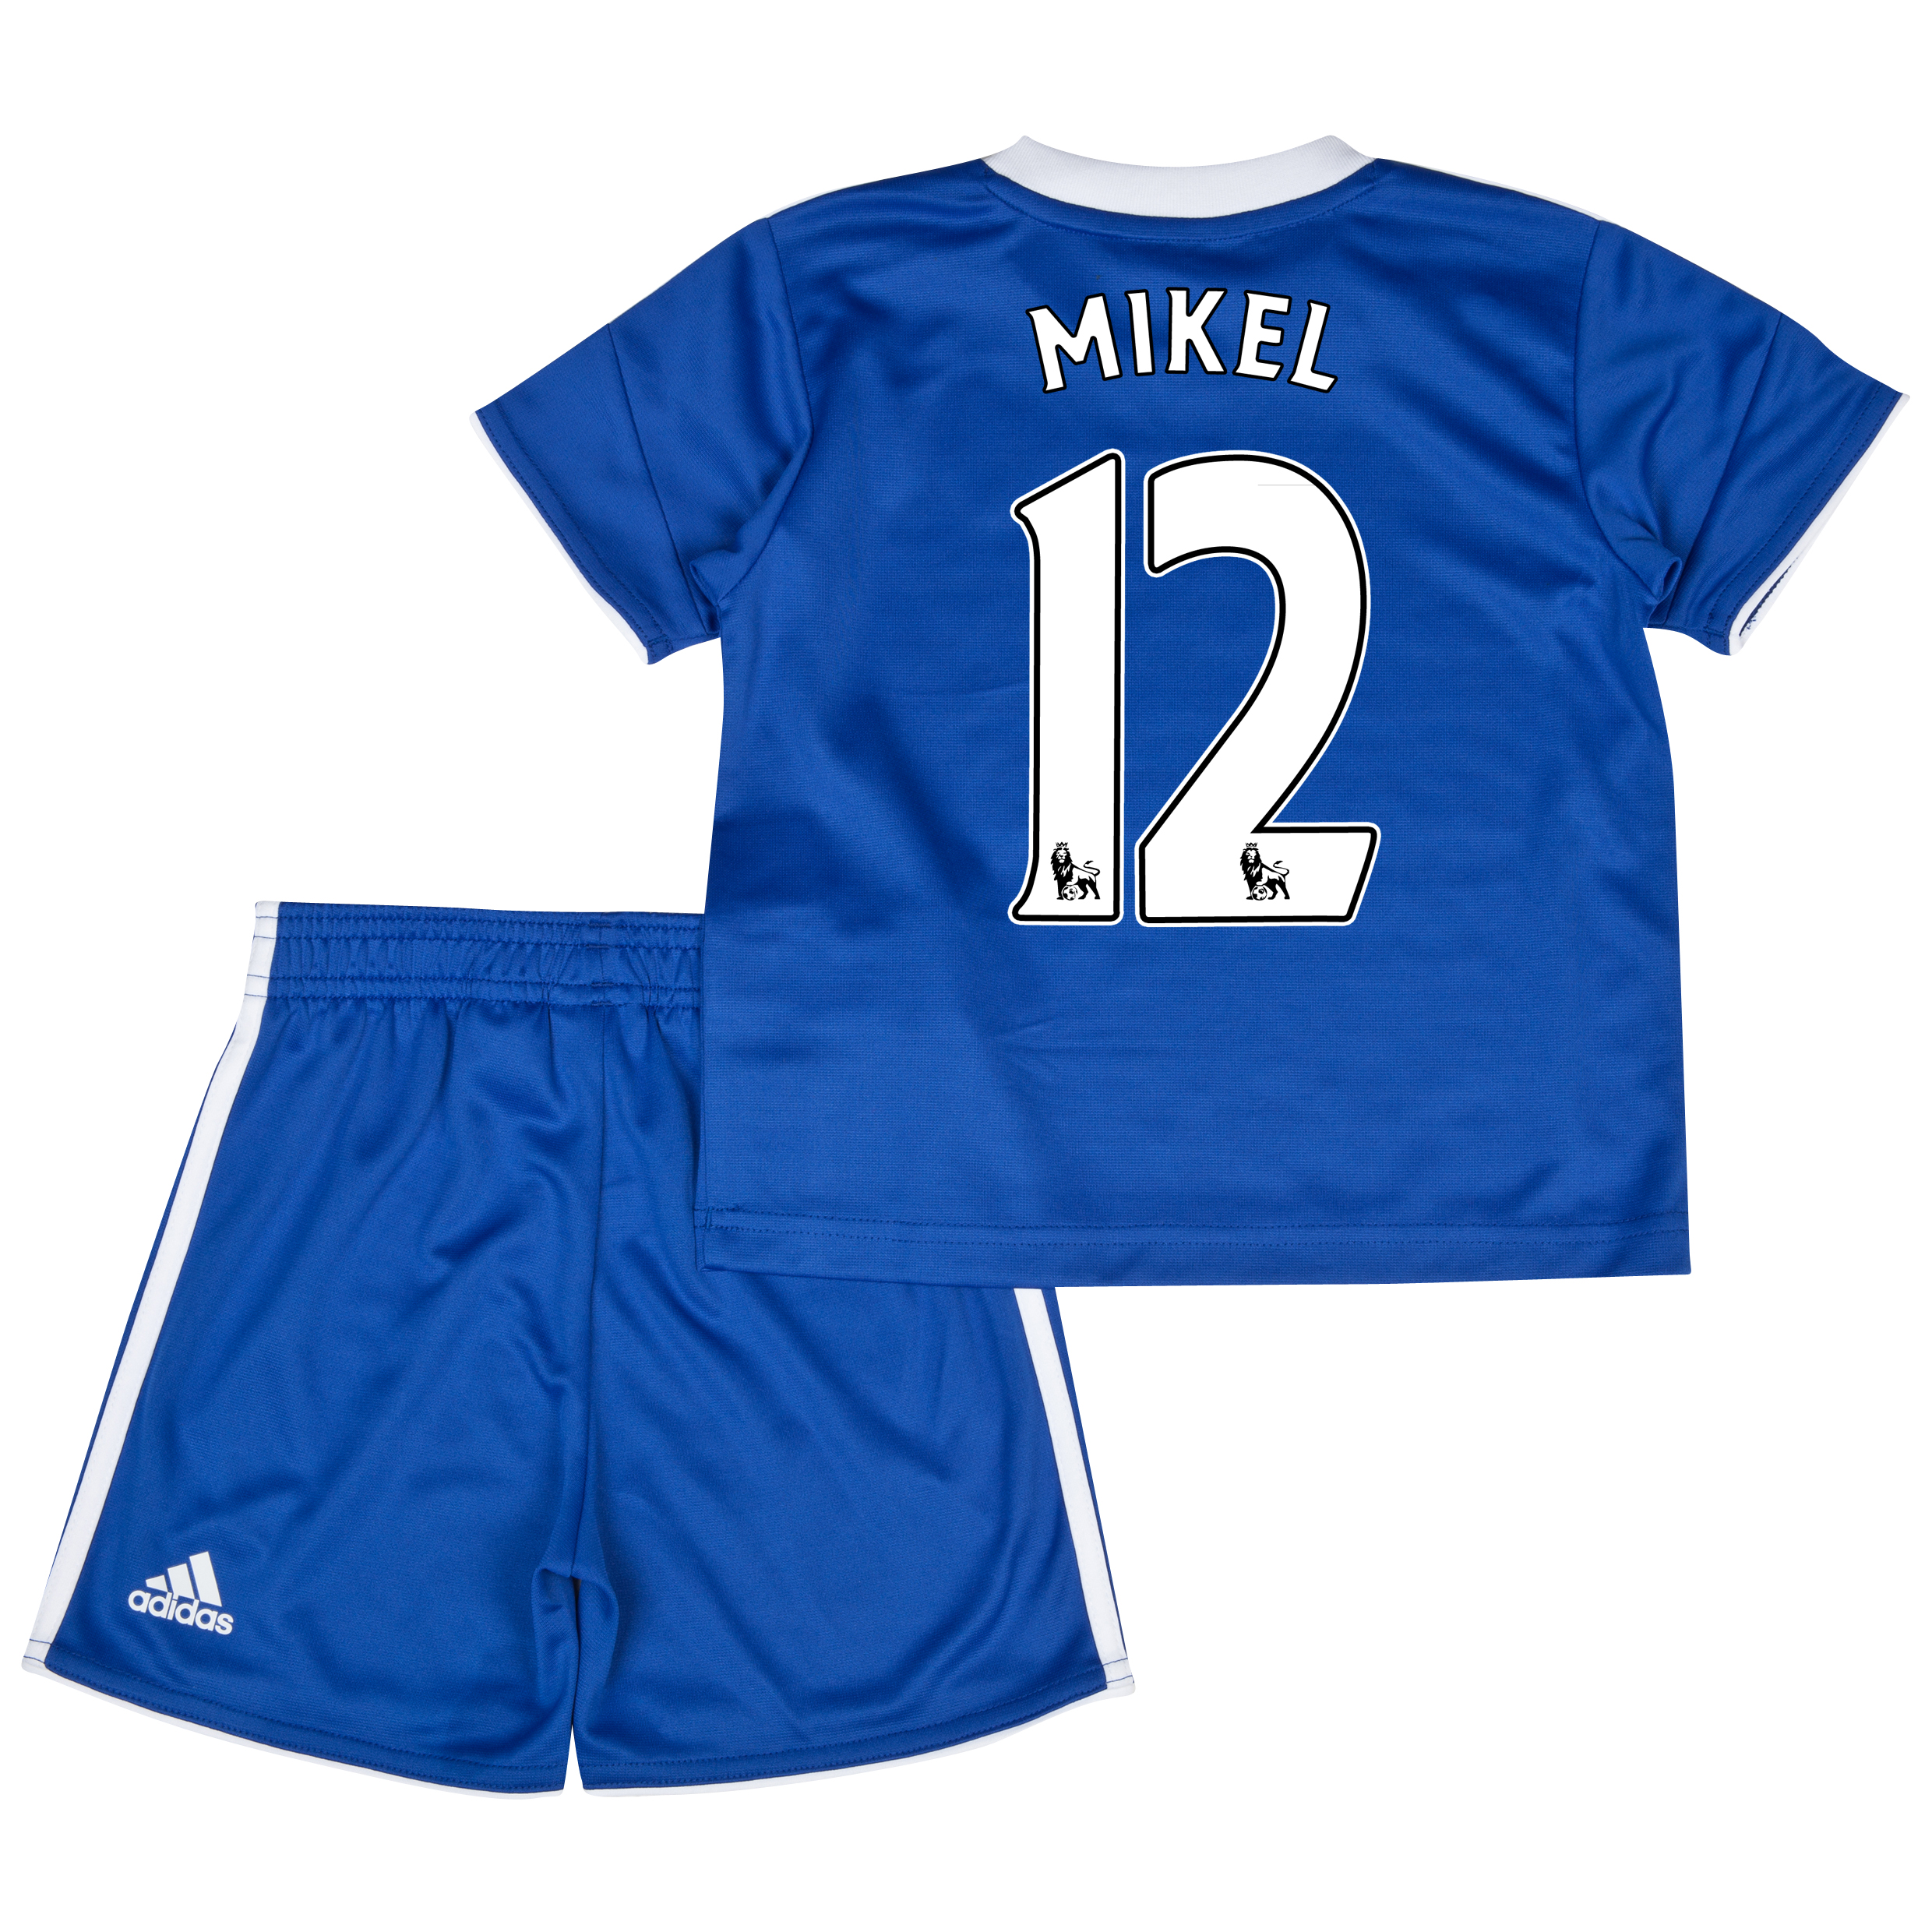 Chelsea Home Mini Kit 2013/14 with Mikel 12 printing